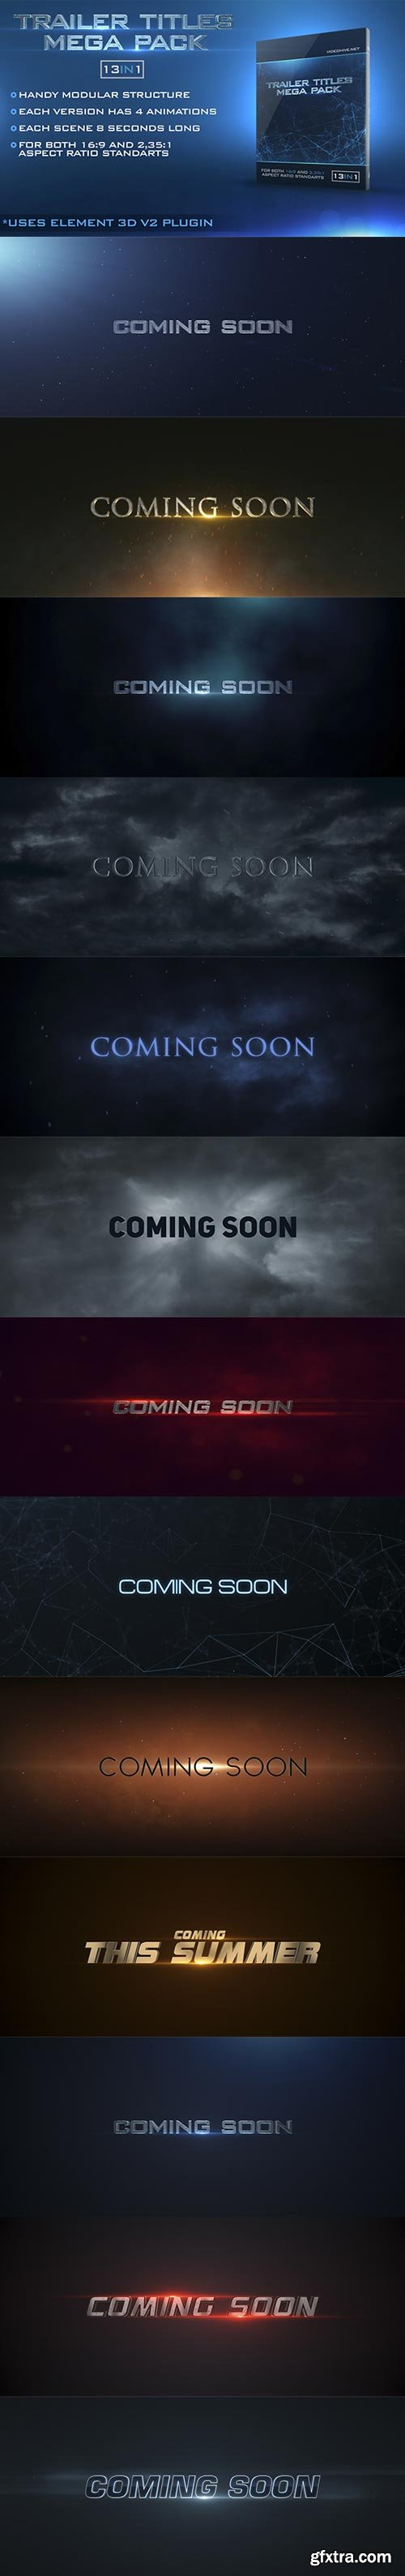 Videohive - Trailer Titles Pack - 15419714